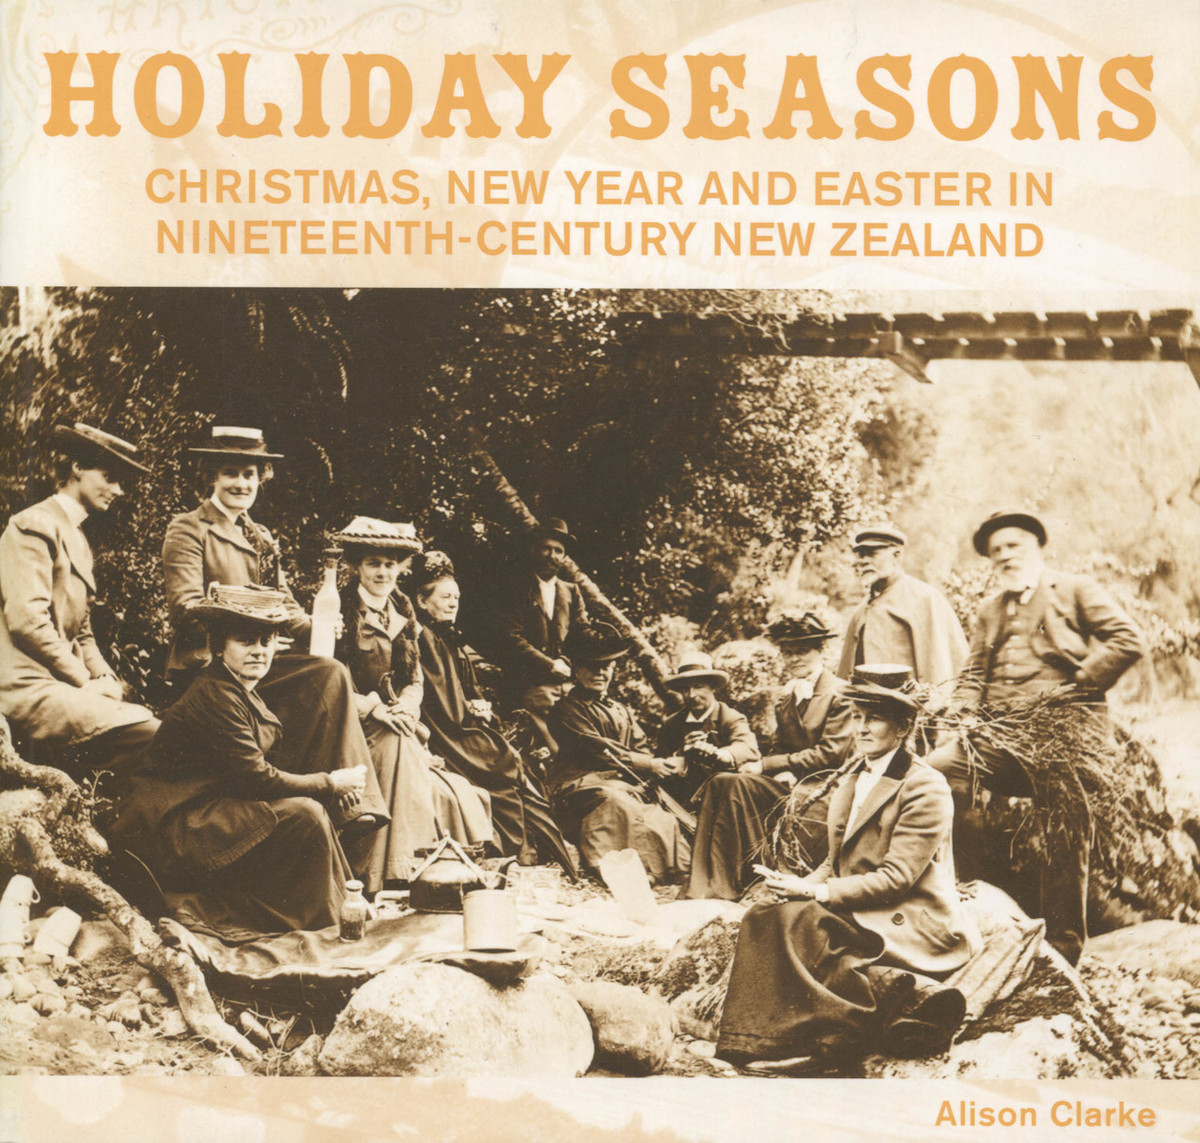 Holiday Seasons: New Year, Easter and Christmas in Nineteenth-Century New Zealand by Alison Clarke